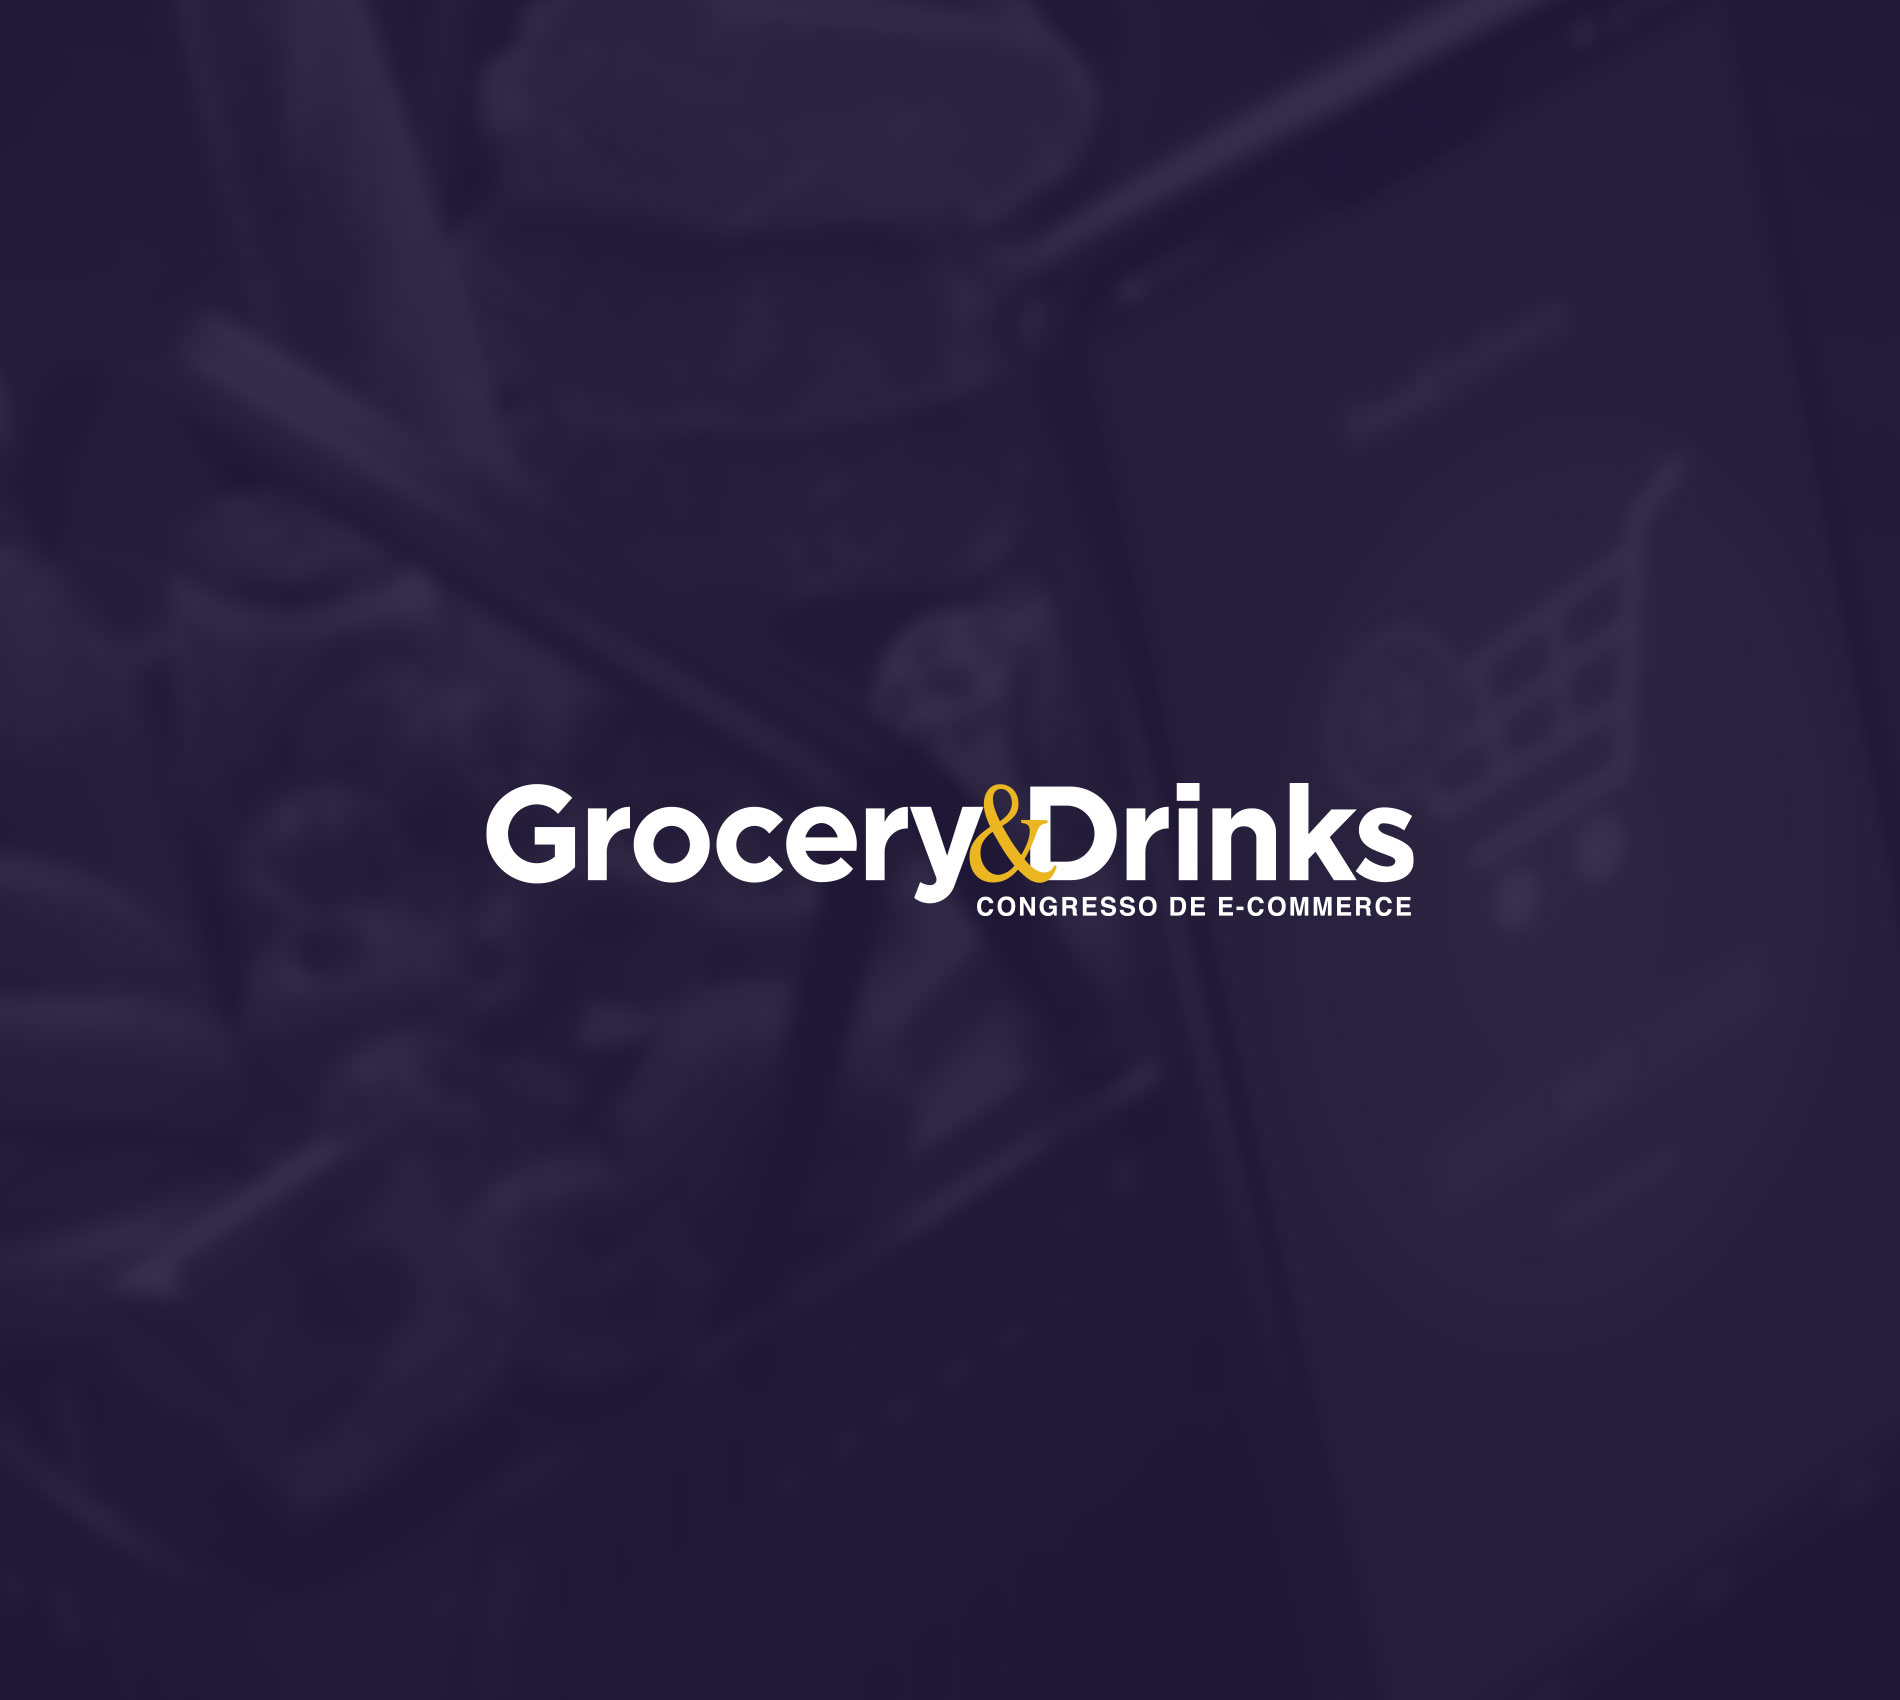 Congresso E-commerce Grocery & Drinks 2021